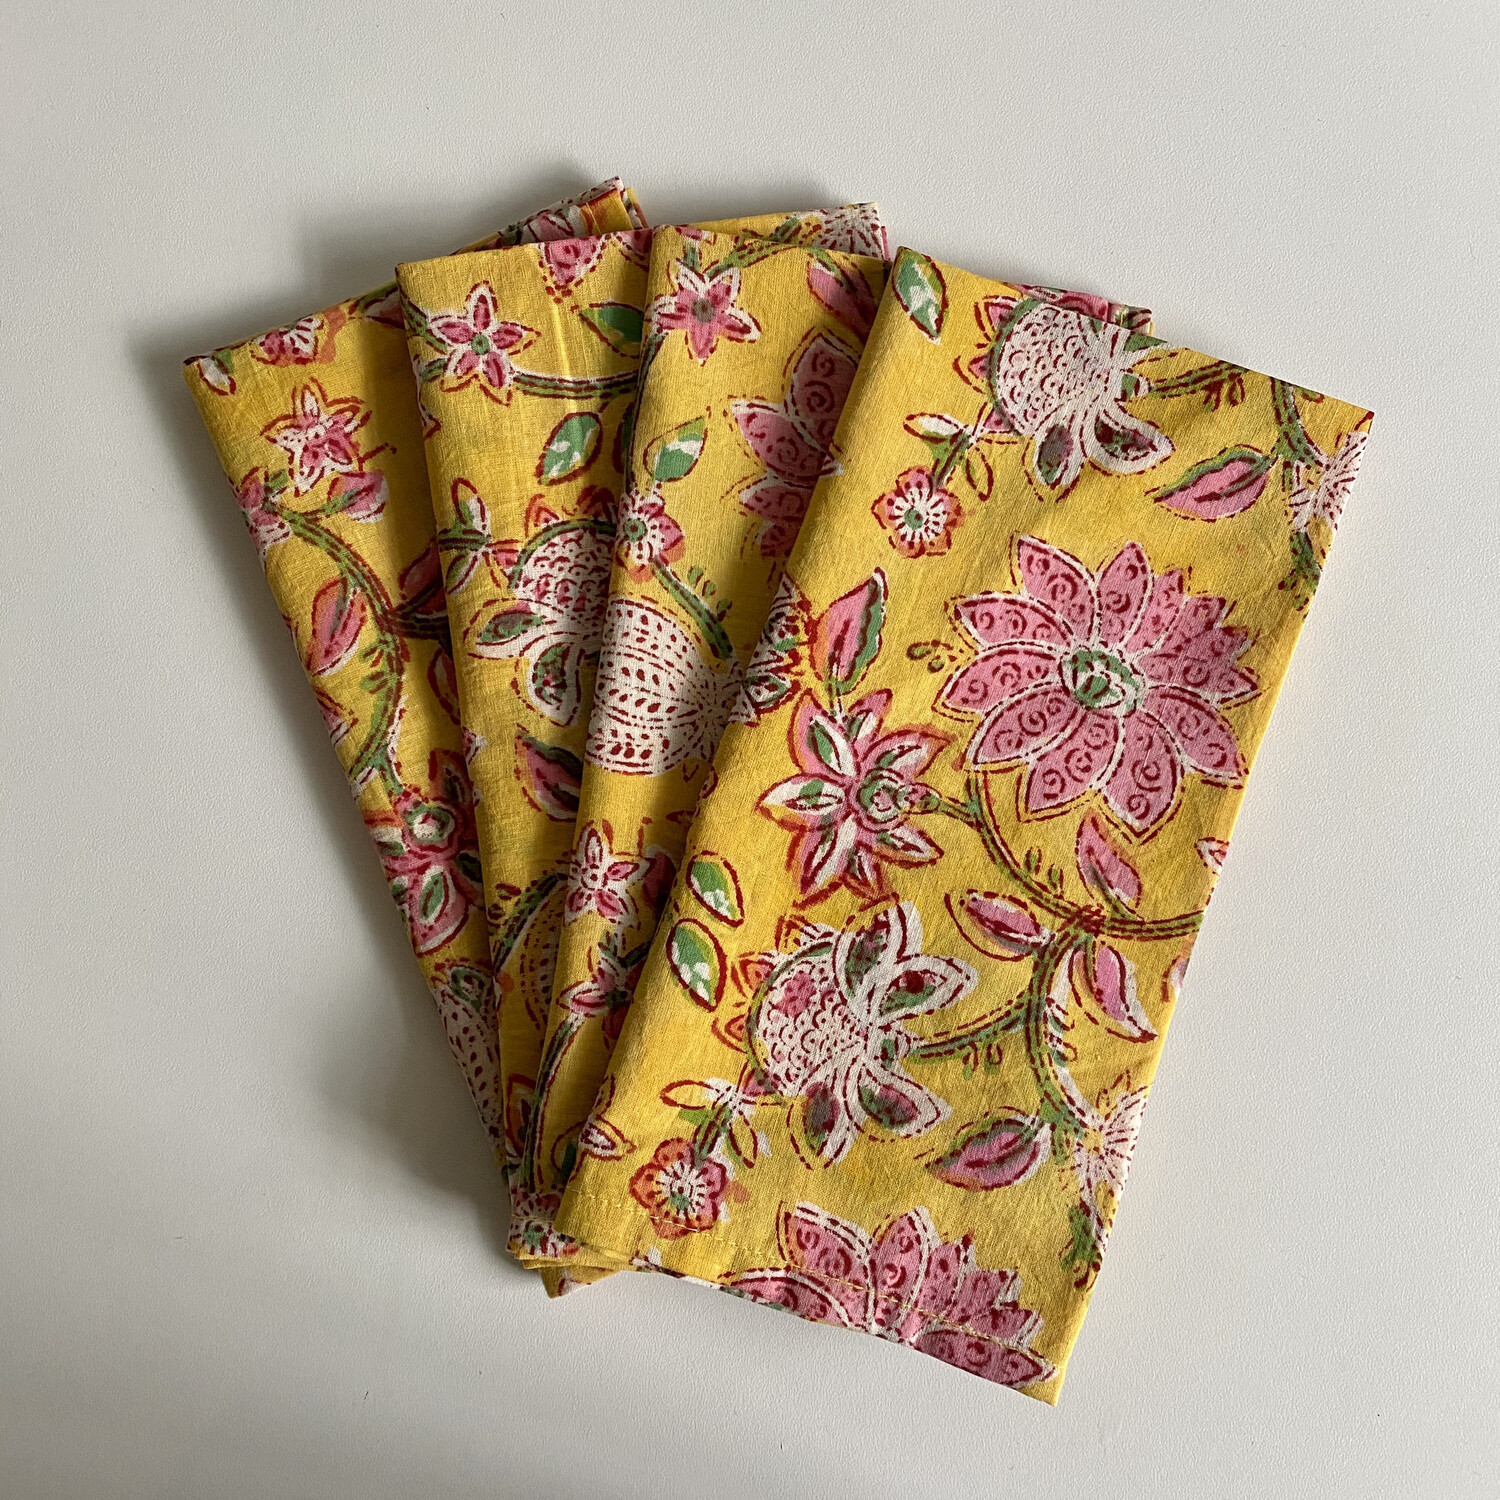 Hand Block Printed Napkins In Sunny Disposition